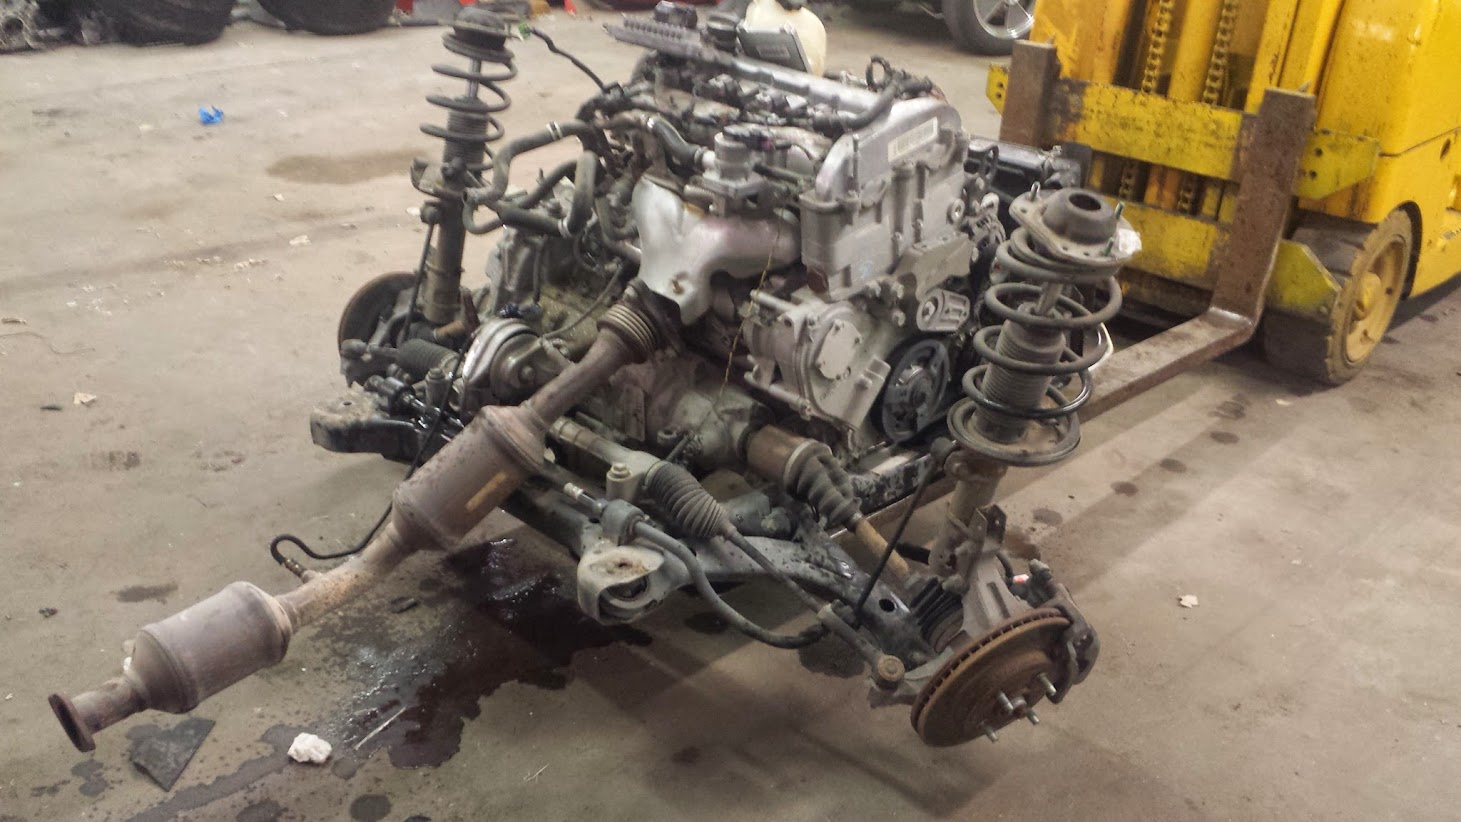 Subframe and powertrain